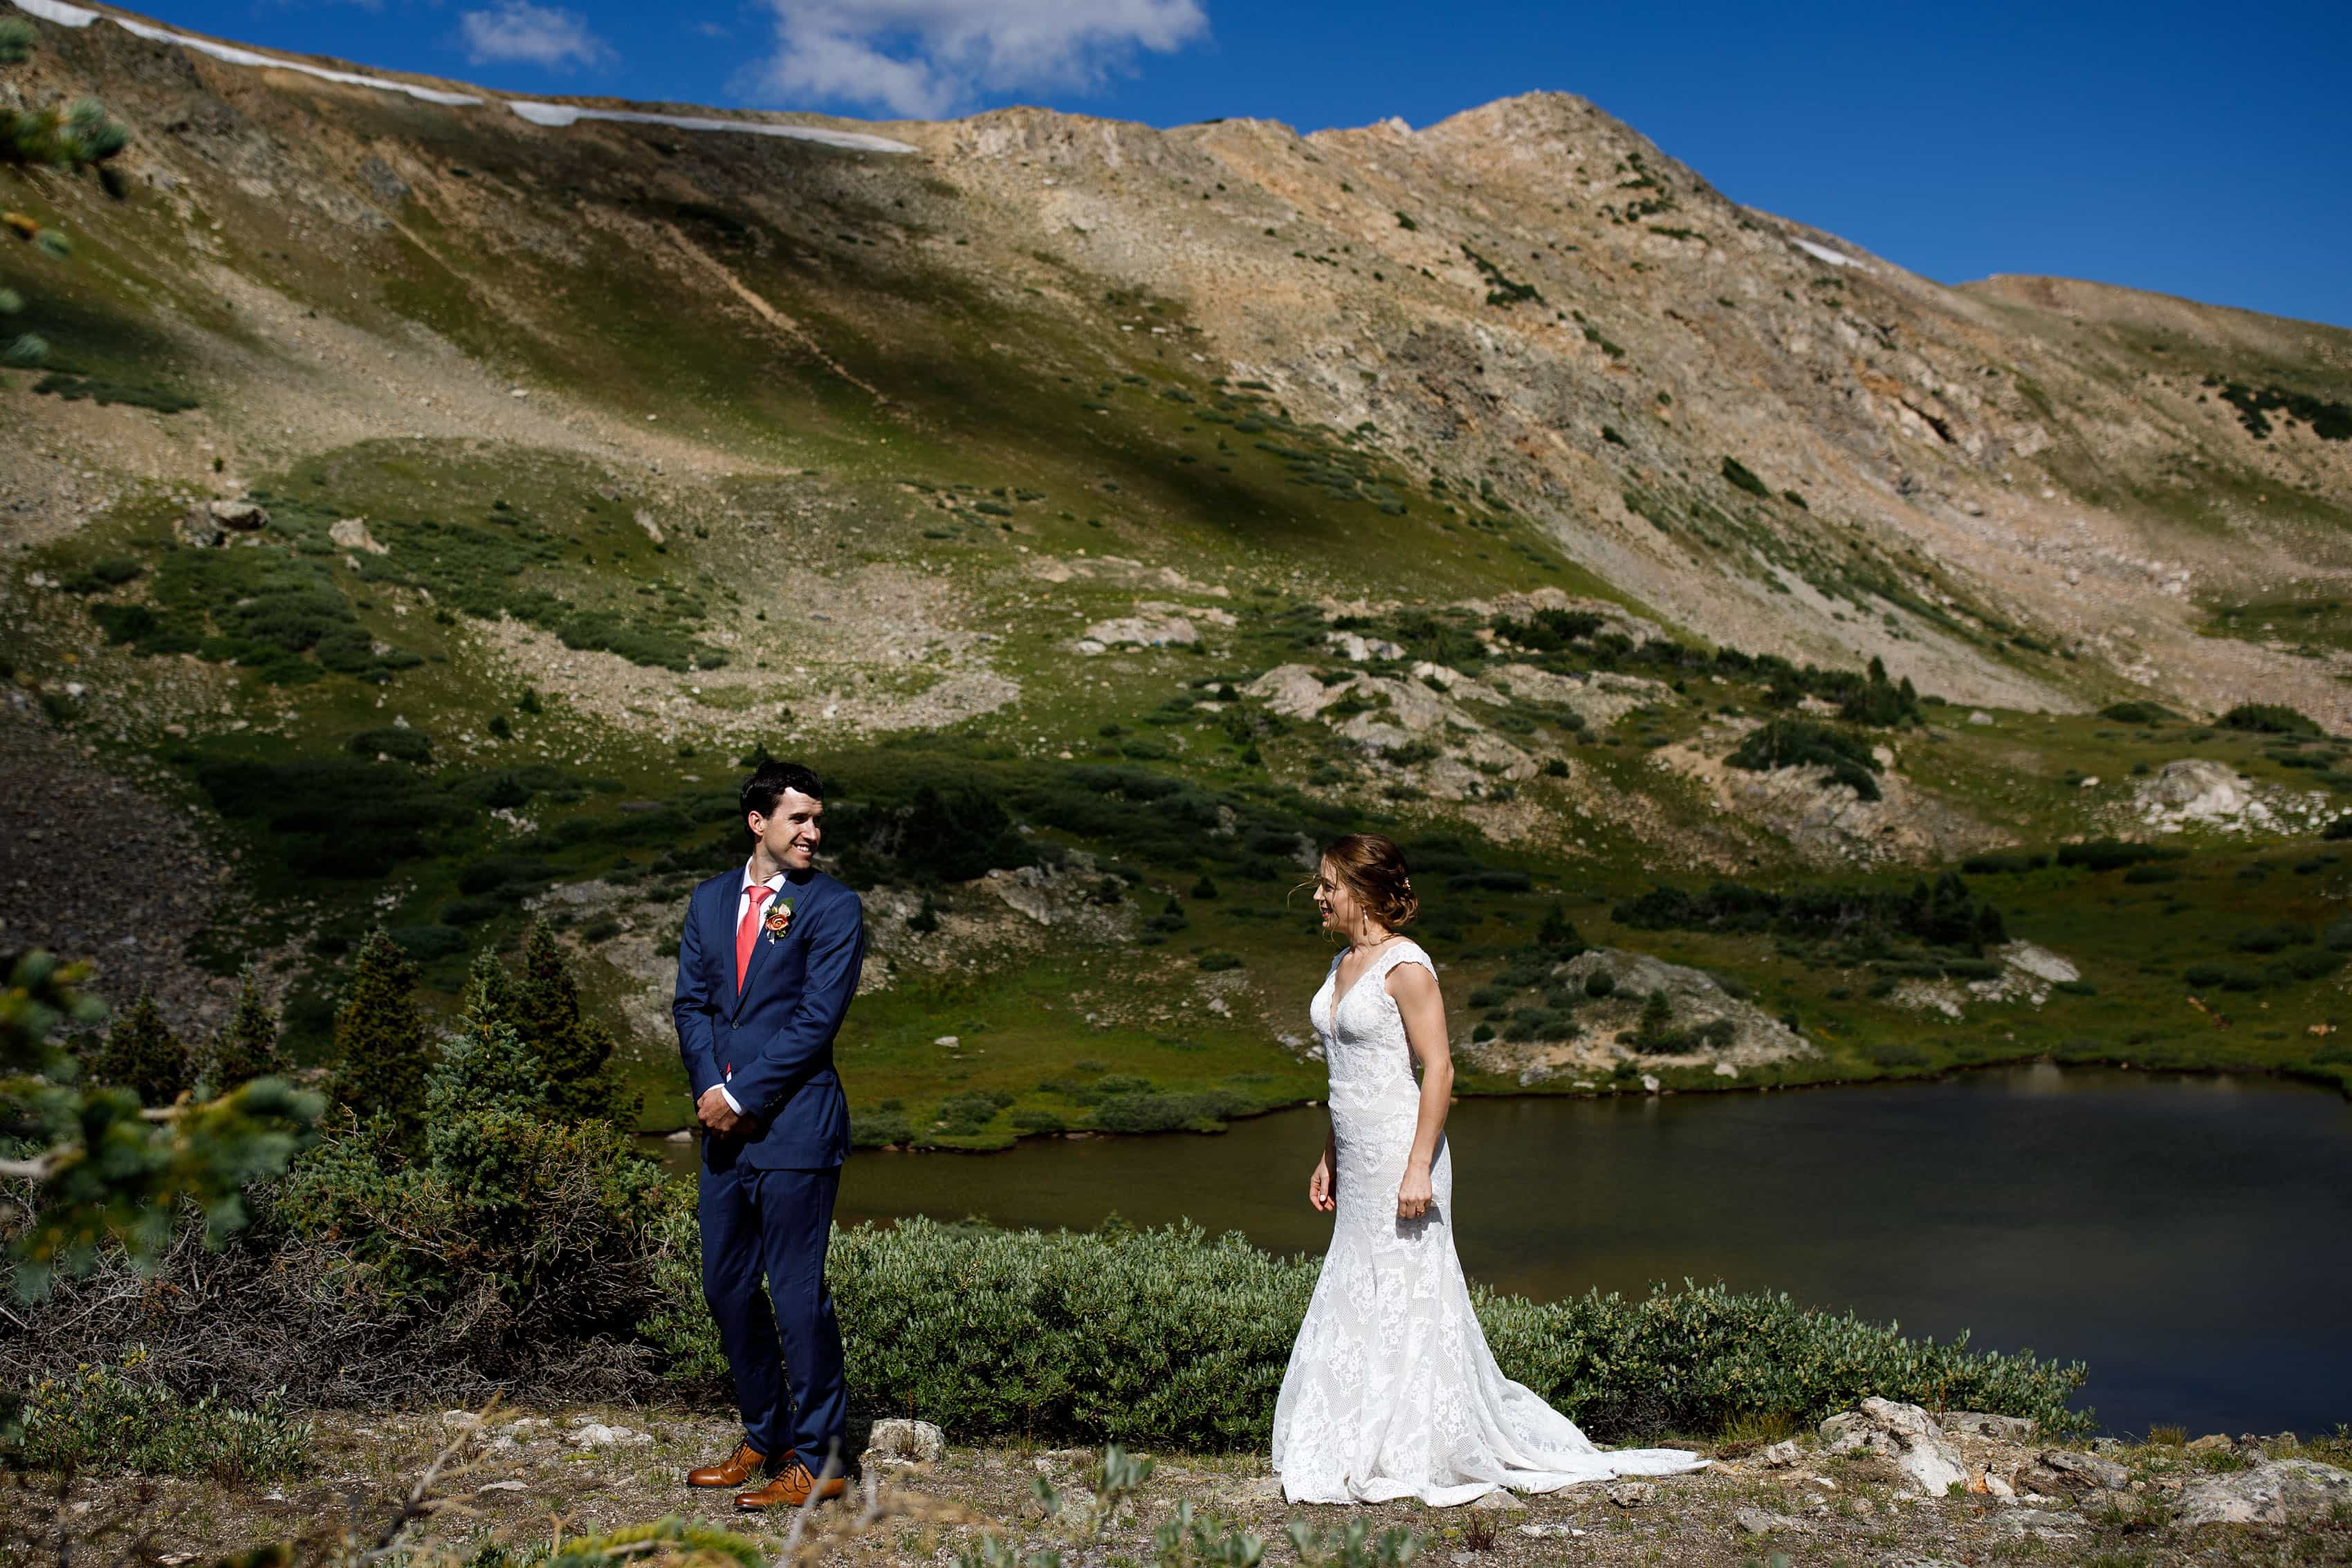 Wedding day first look on Loveland Pass